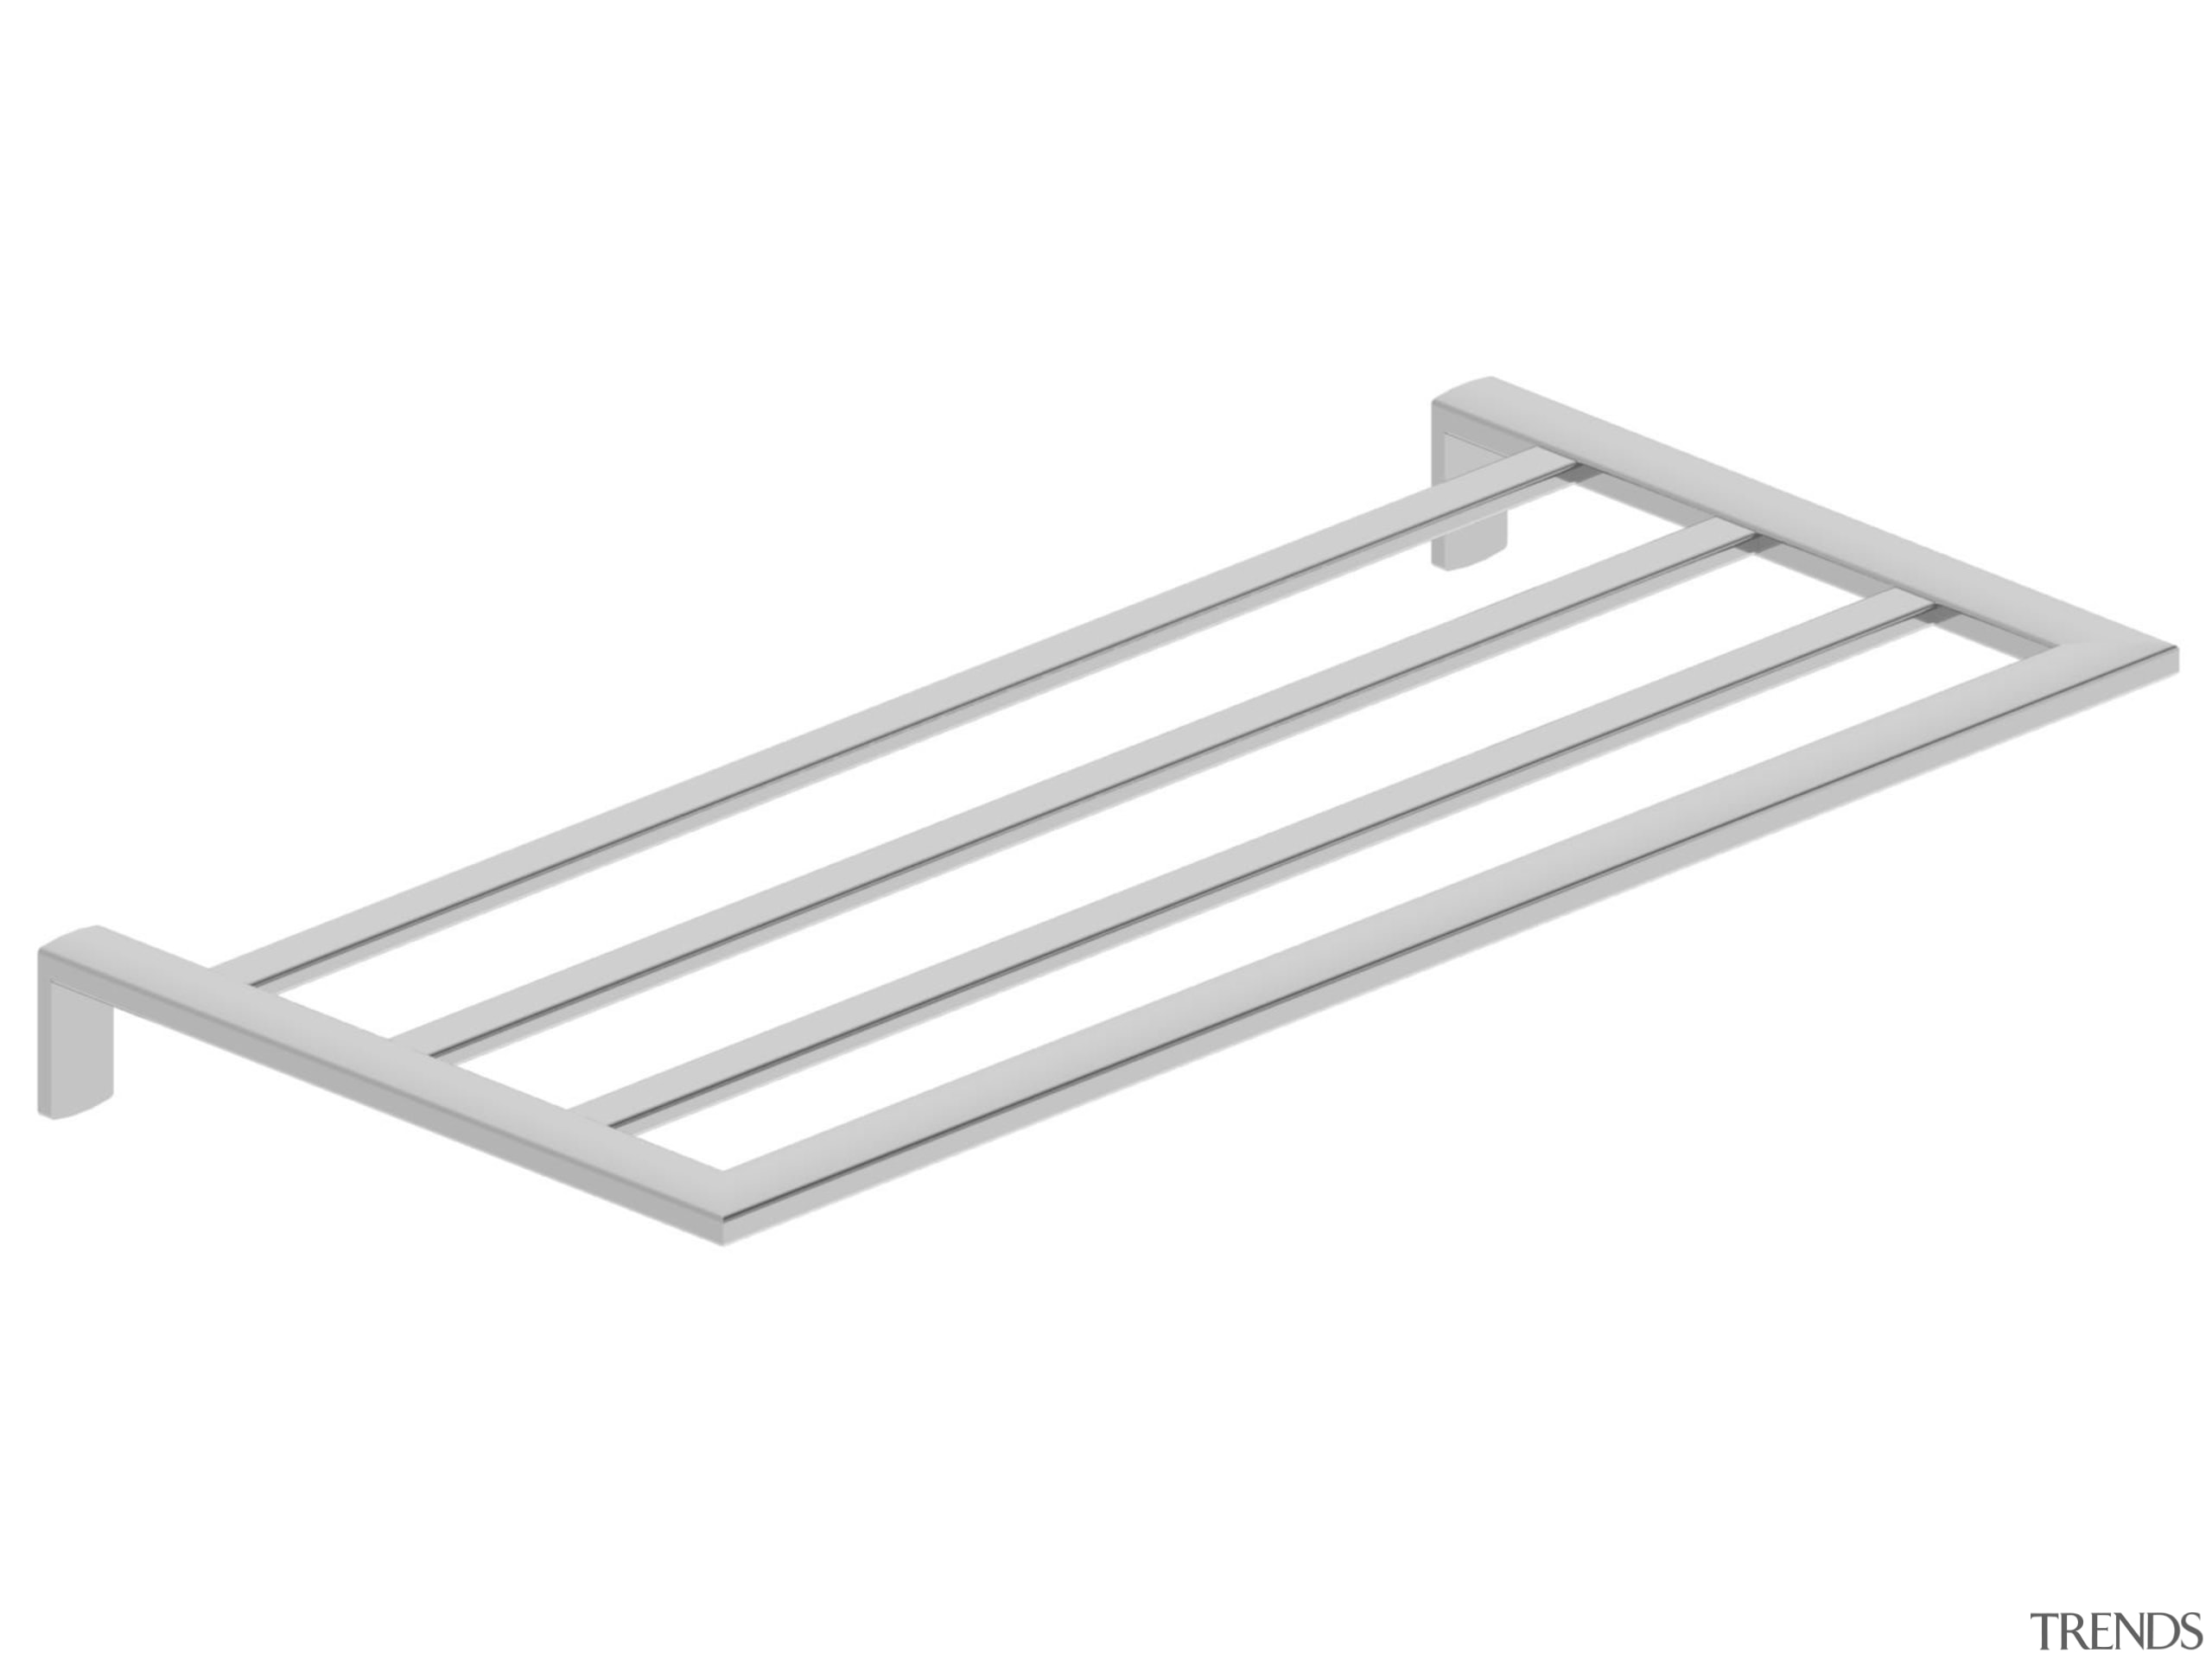 • Manufactured in Australia• Warranty 10 Years• Double angle, lighting, line, product, product design, white